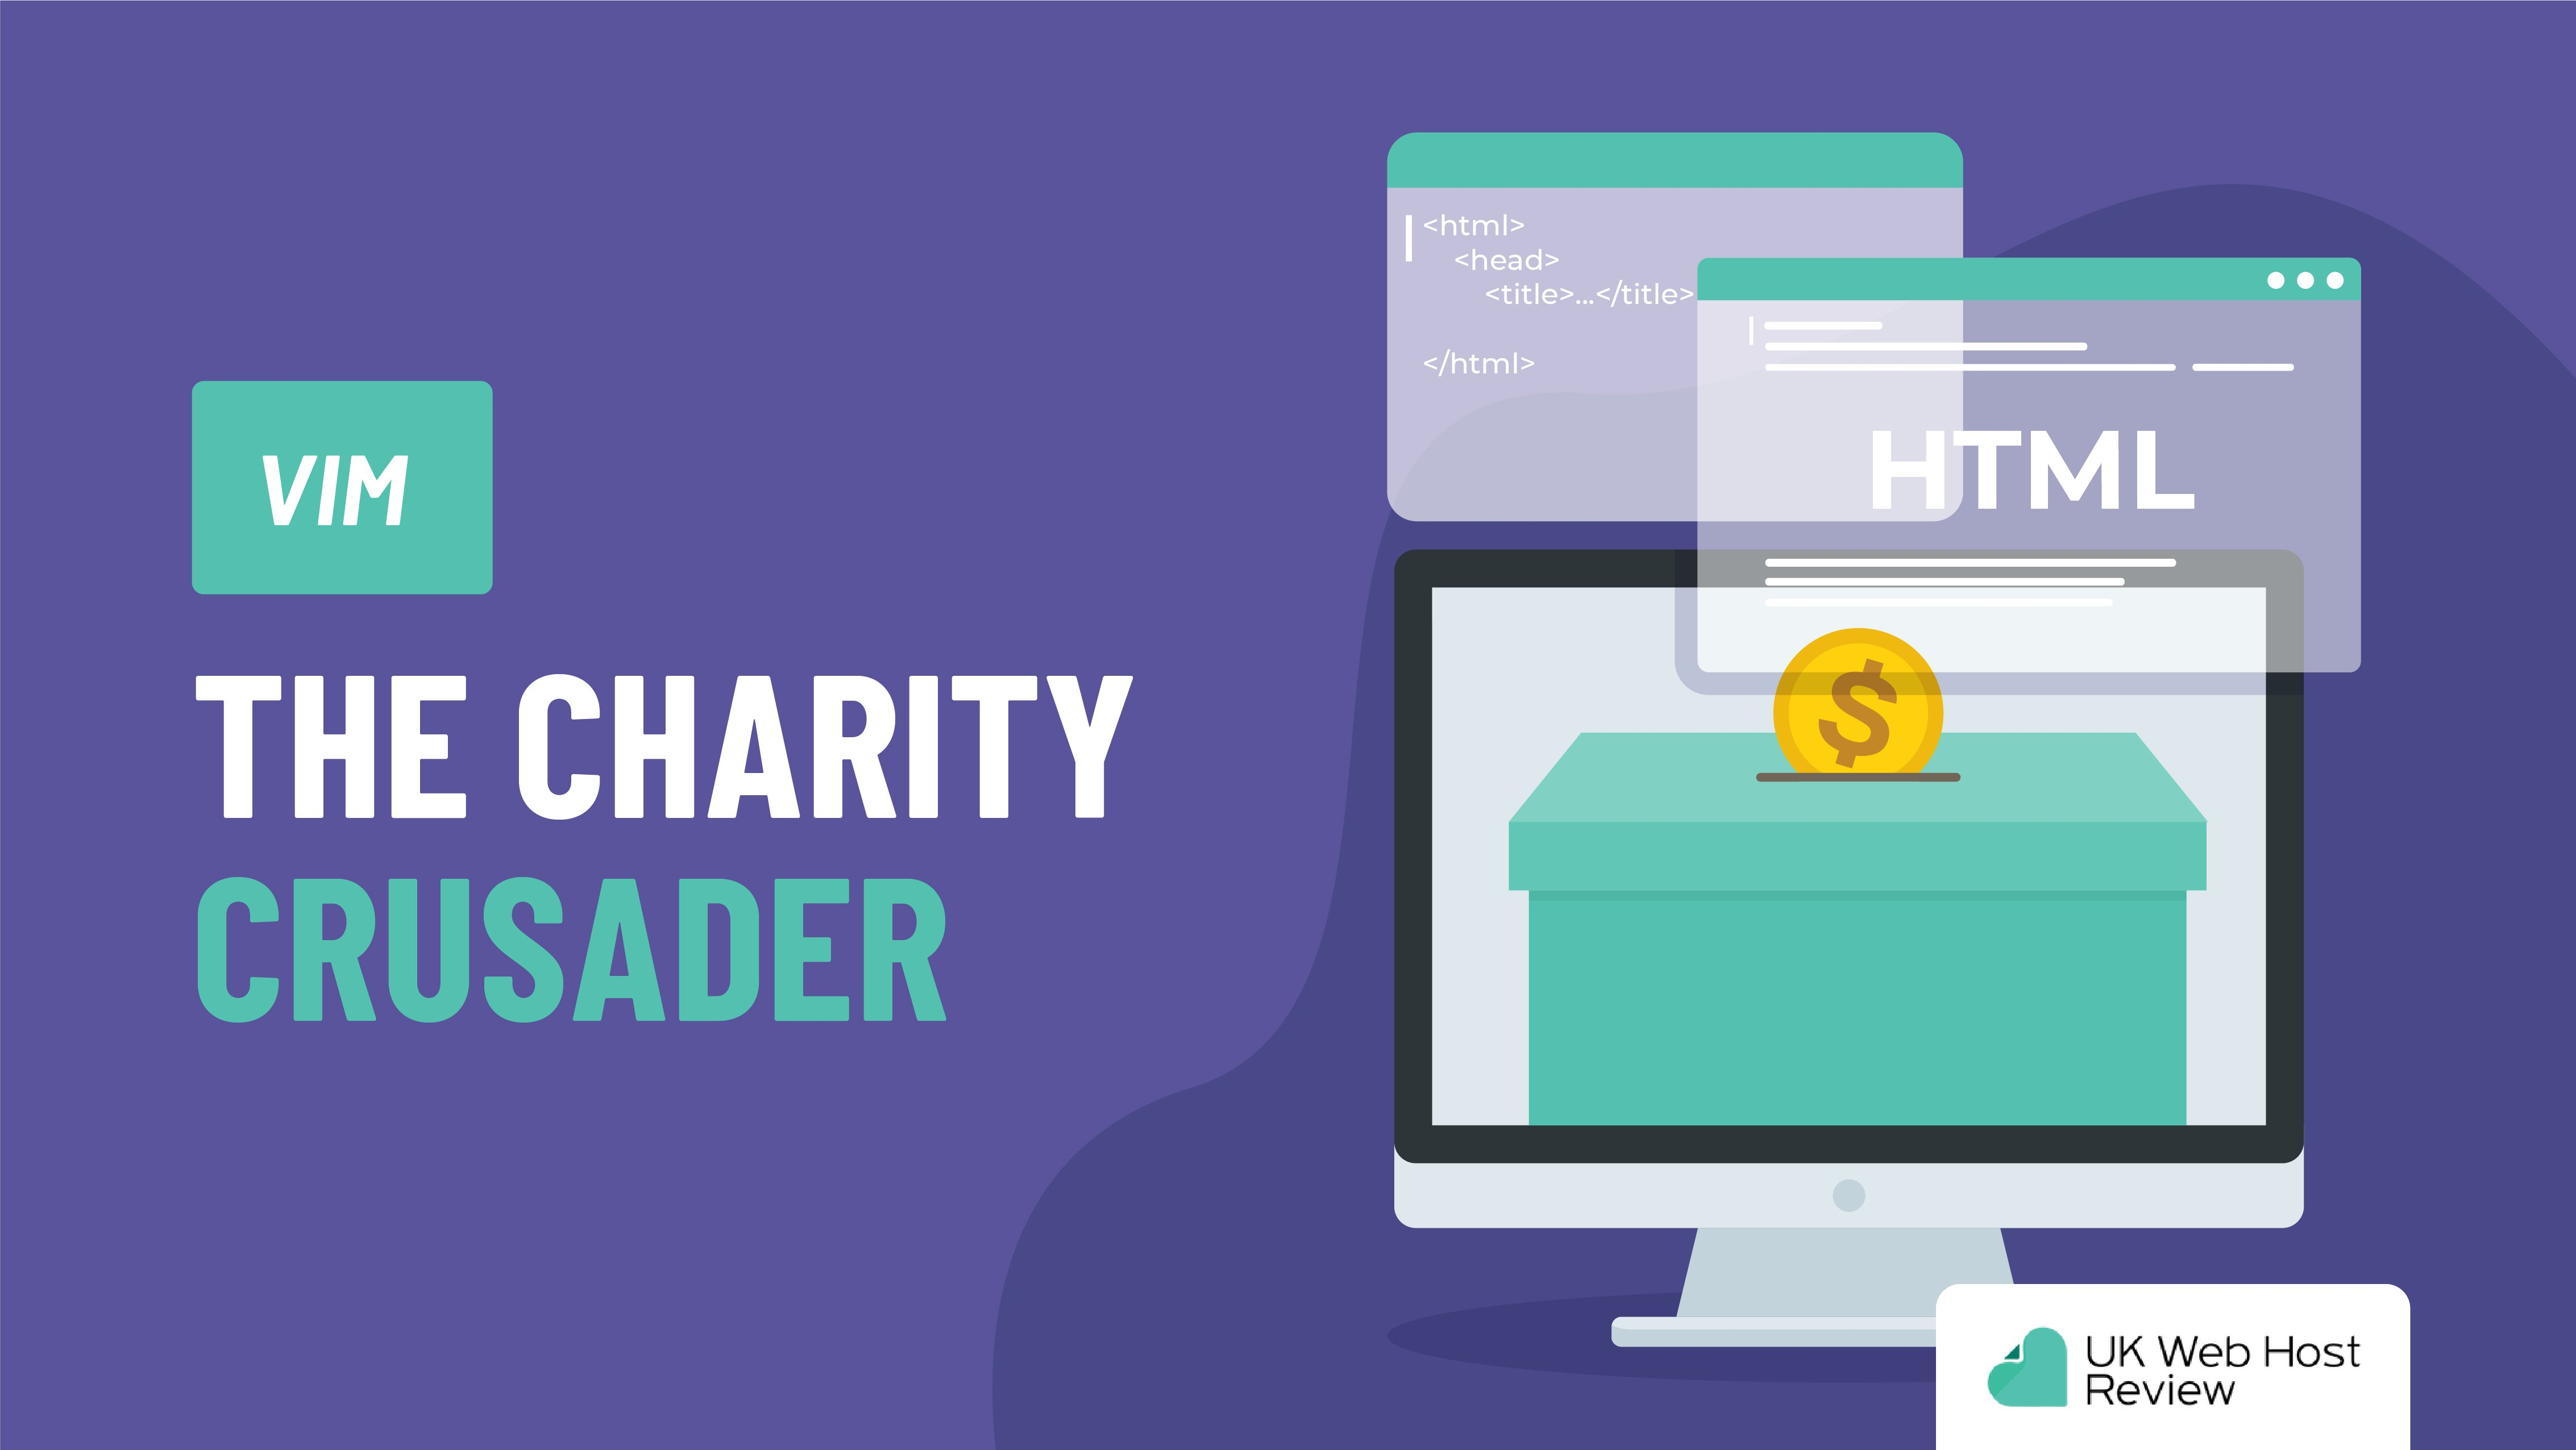 Vim – The Charity Crusader